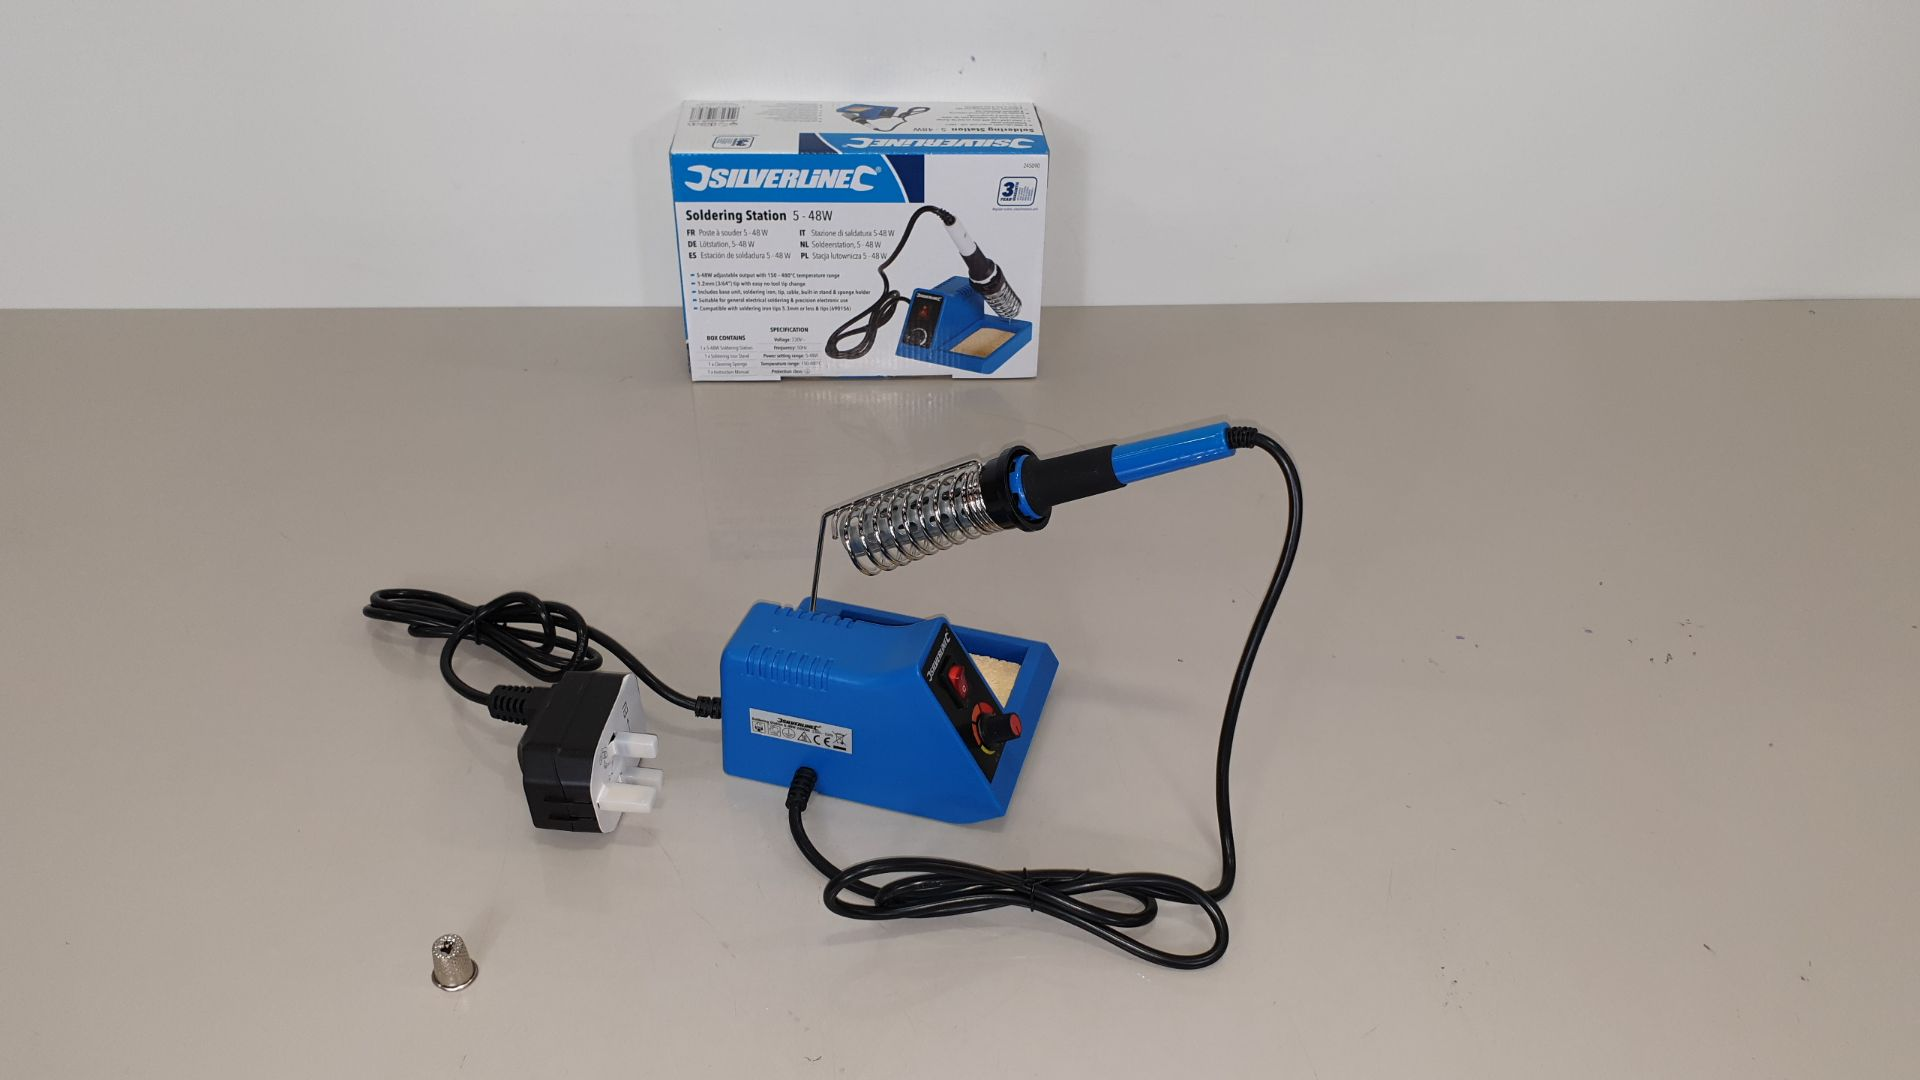 Lot 229 - 20 X BRAND NEW SILVERLINE SOLDERING STATIONS 5-48W (PROD CODE 245090) - TRADE PRICE £31.34 EACH (EXC